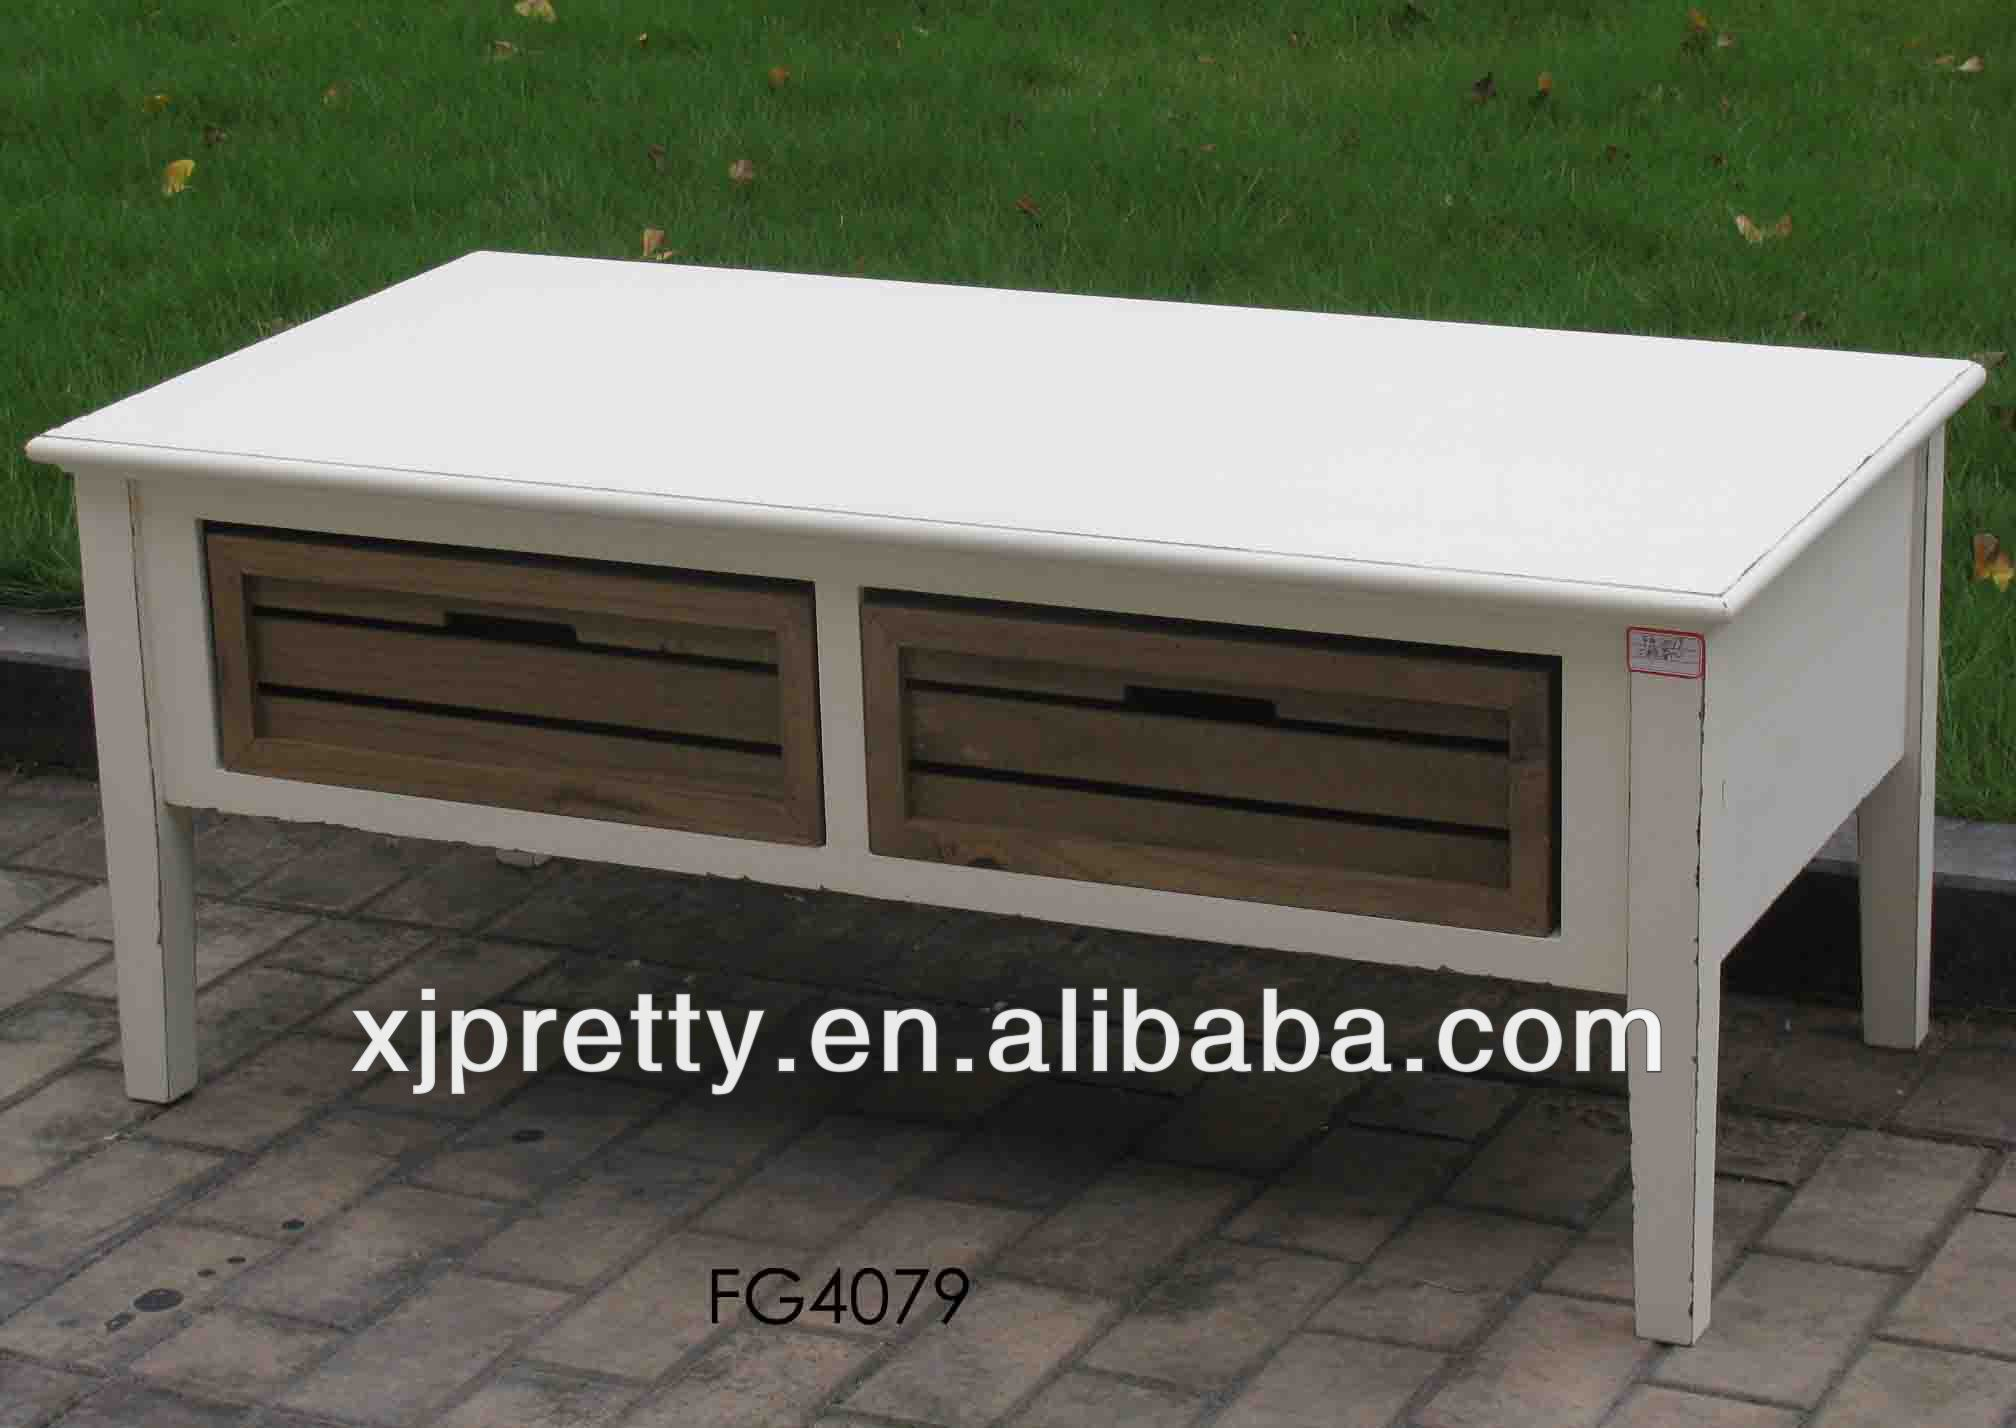 antique white wooden 2 drawer coffee table indoor furniture